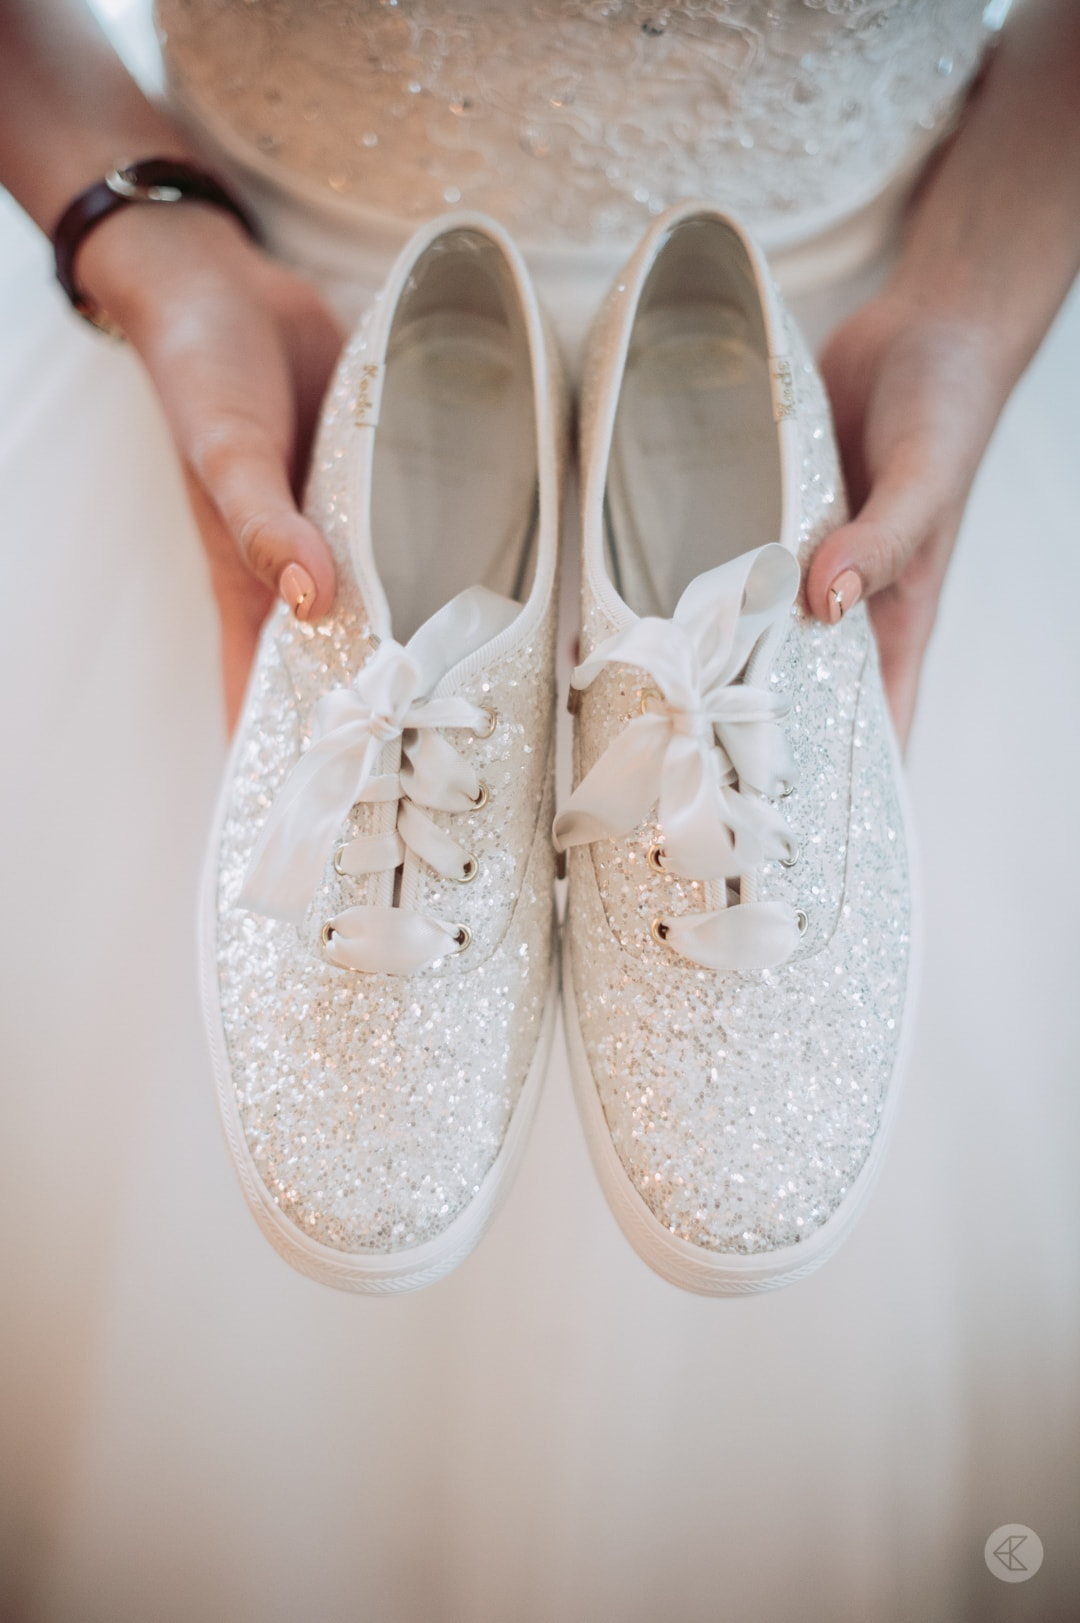 Keds x Kate Spade Bridal Shoes